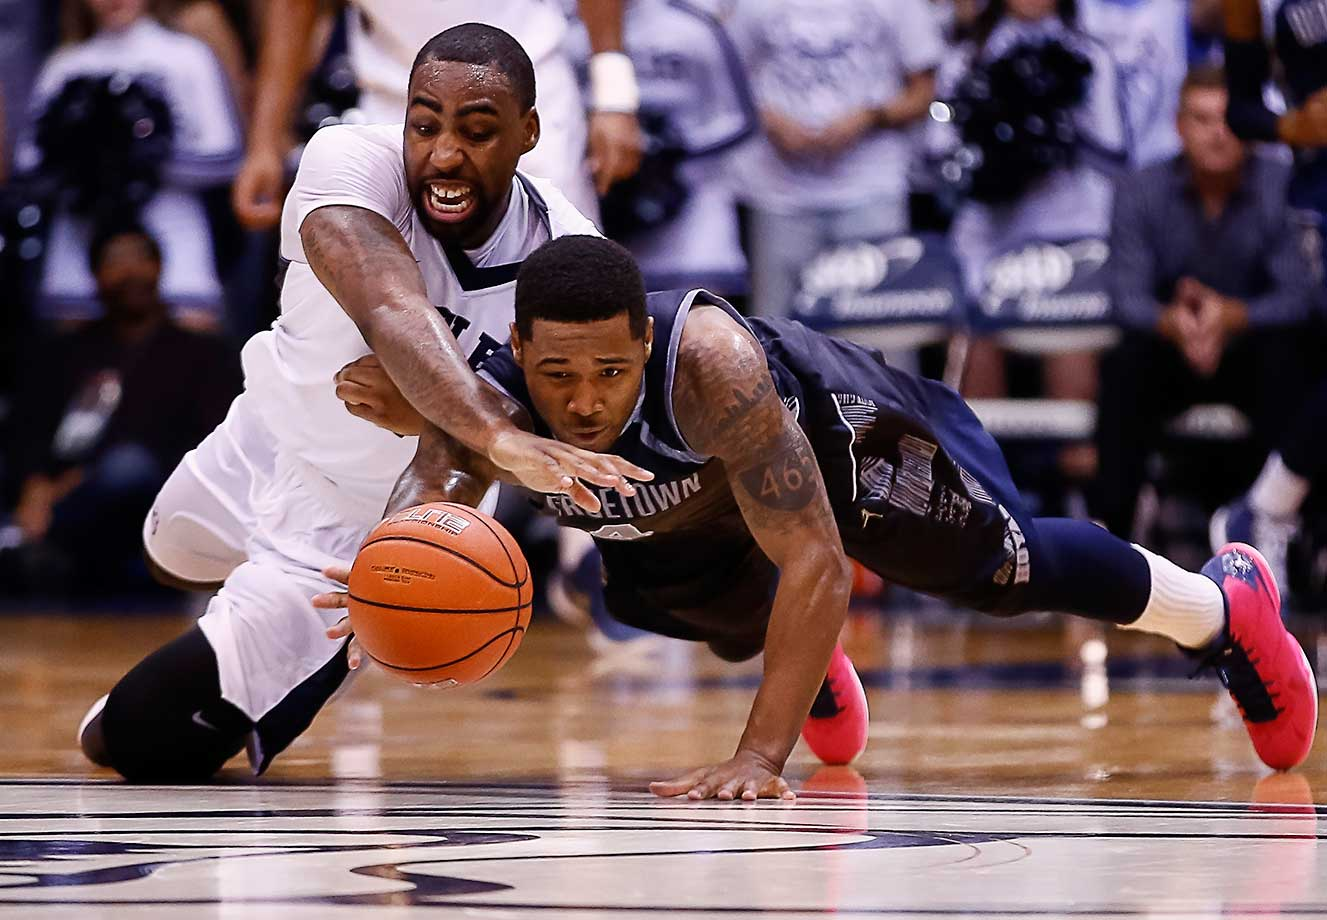 Roosevelt Jones of the Butler Bulldogs and D'Vauntes Smith-Rivera of the Georgetown Hoyas dive for a loose ball at Hinkle Fieldhouse in Indianapolis. Butler defeated Georgetown 87-76.